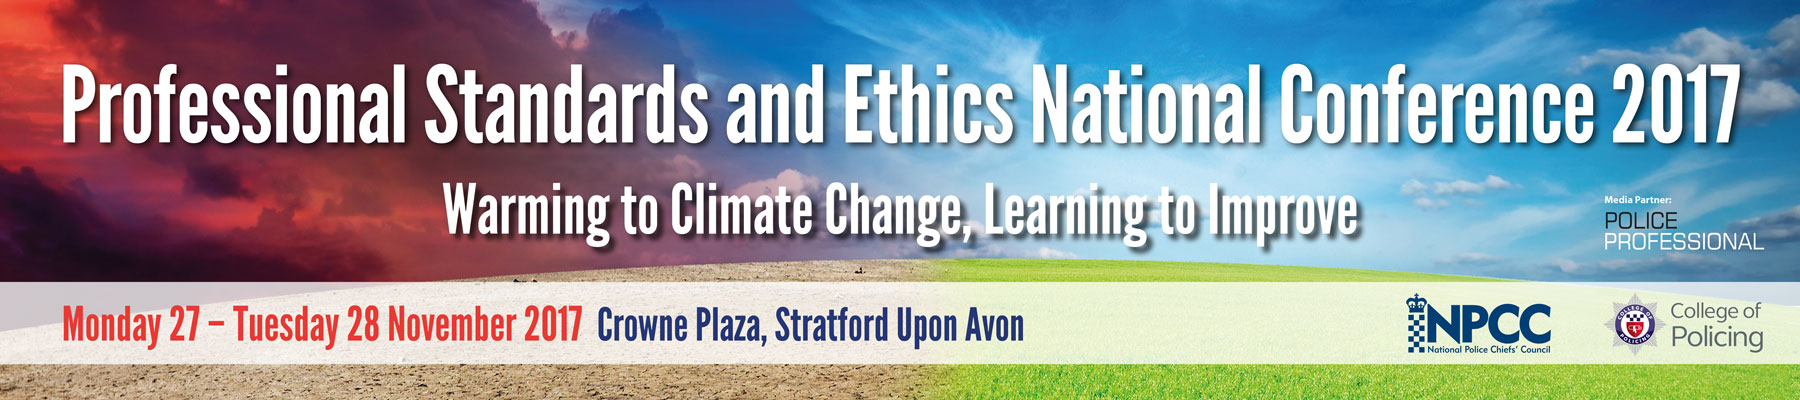 Professional Standards and Ethics National Conference 2017